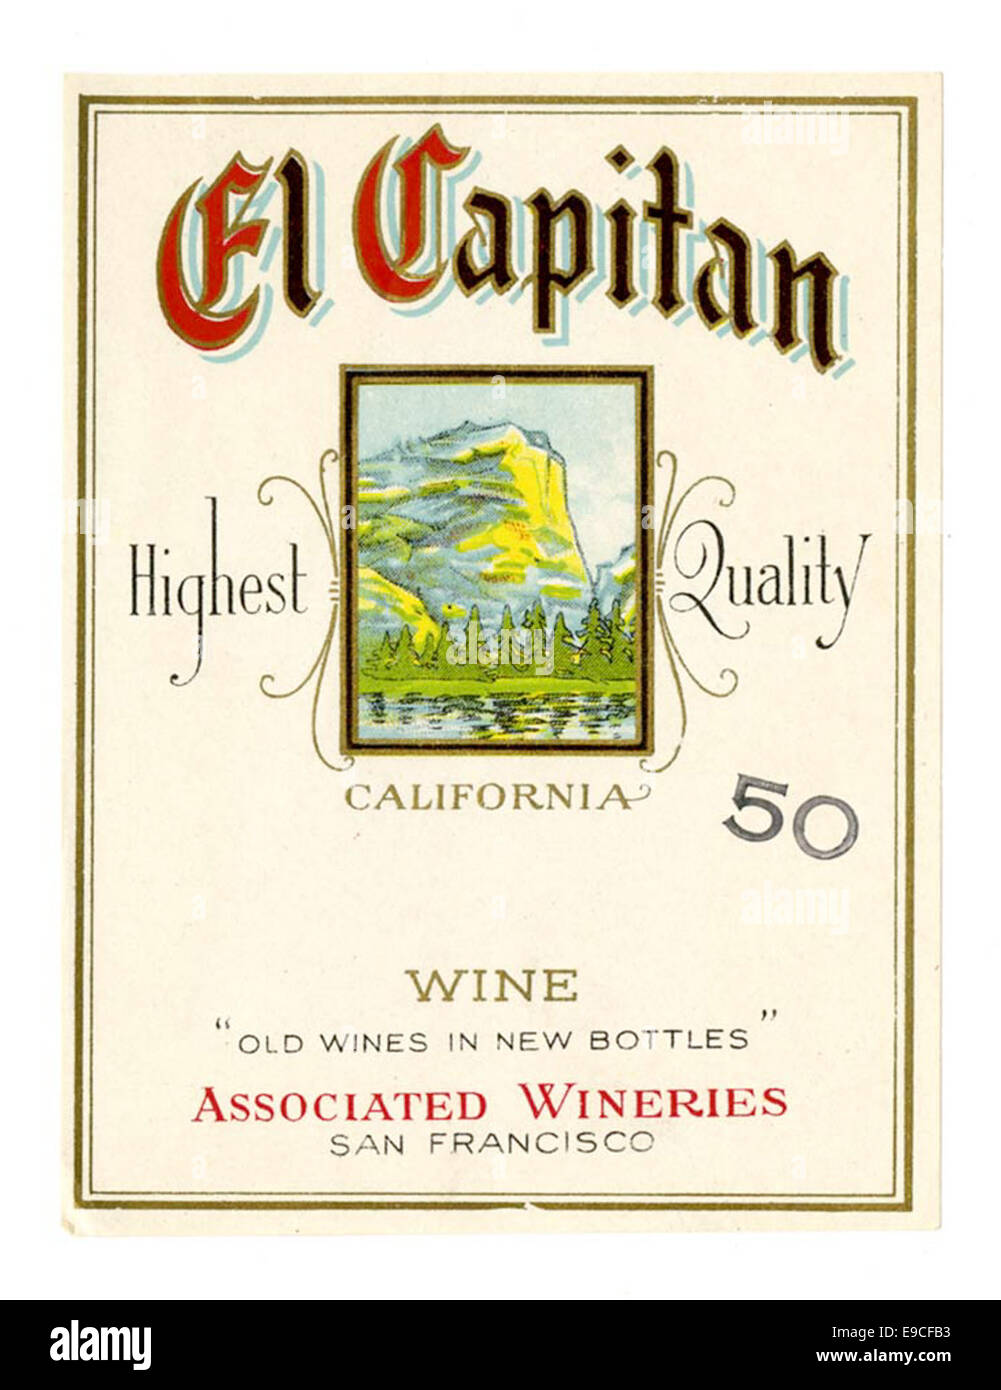 Wine label, Associated Wineries, El Capitan - Stock Image